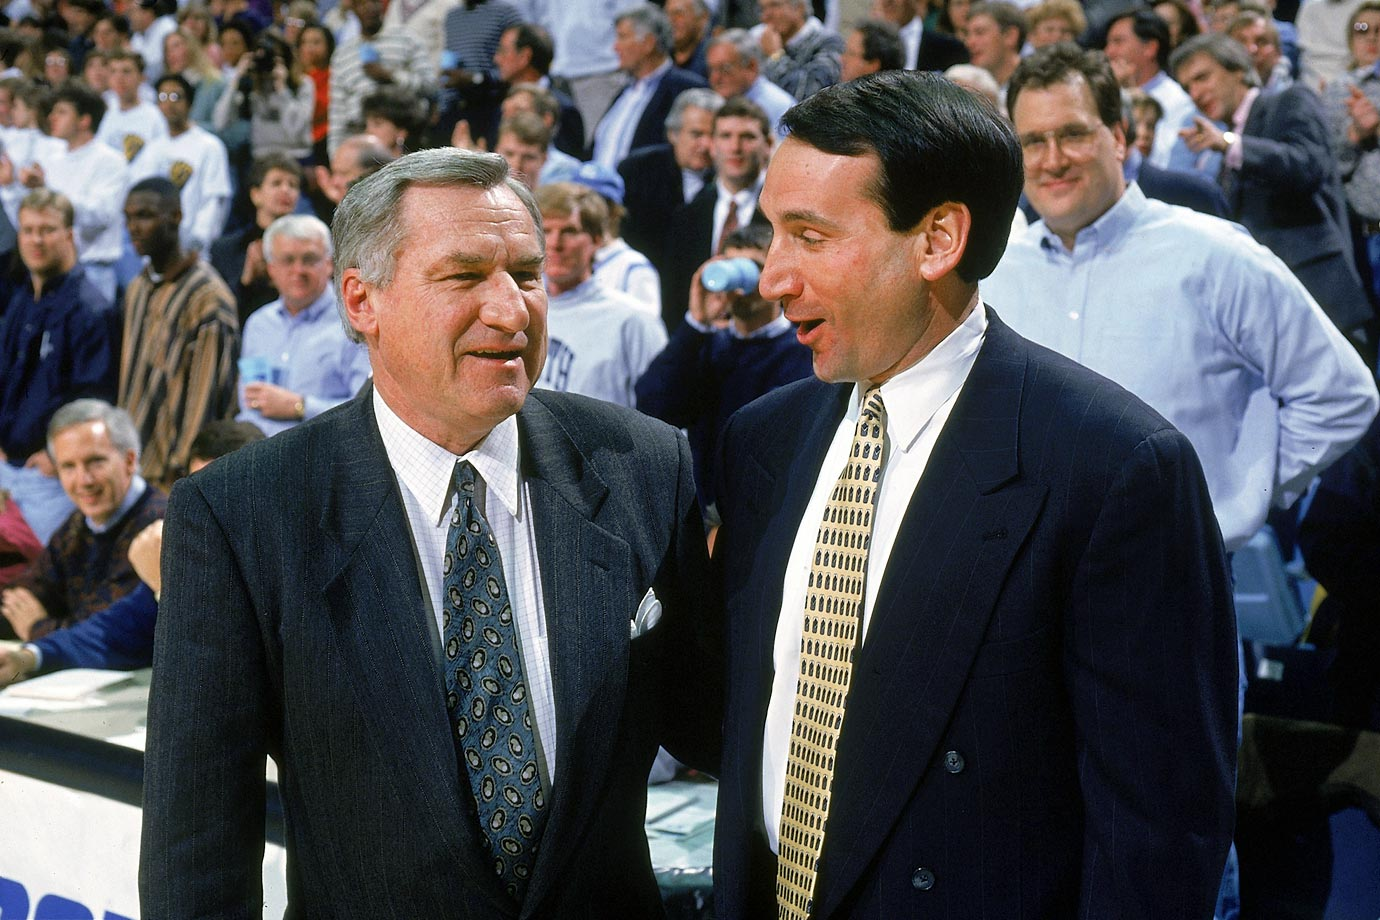 Dean Smith and Mike Krzyzewski